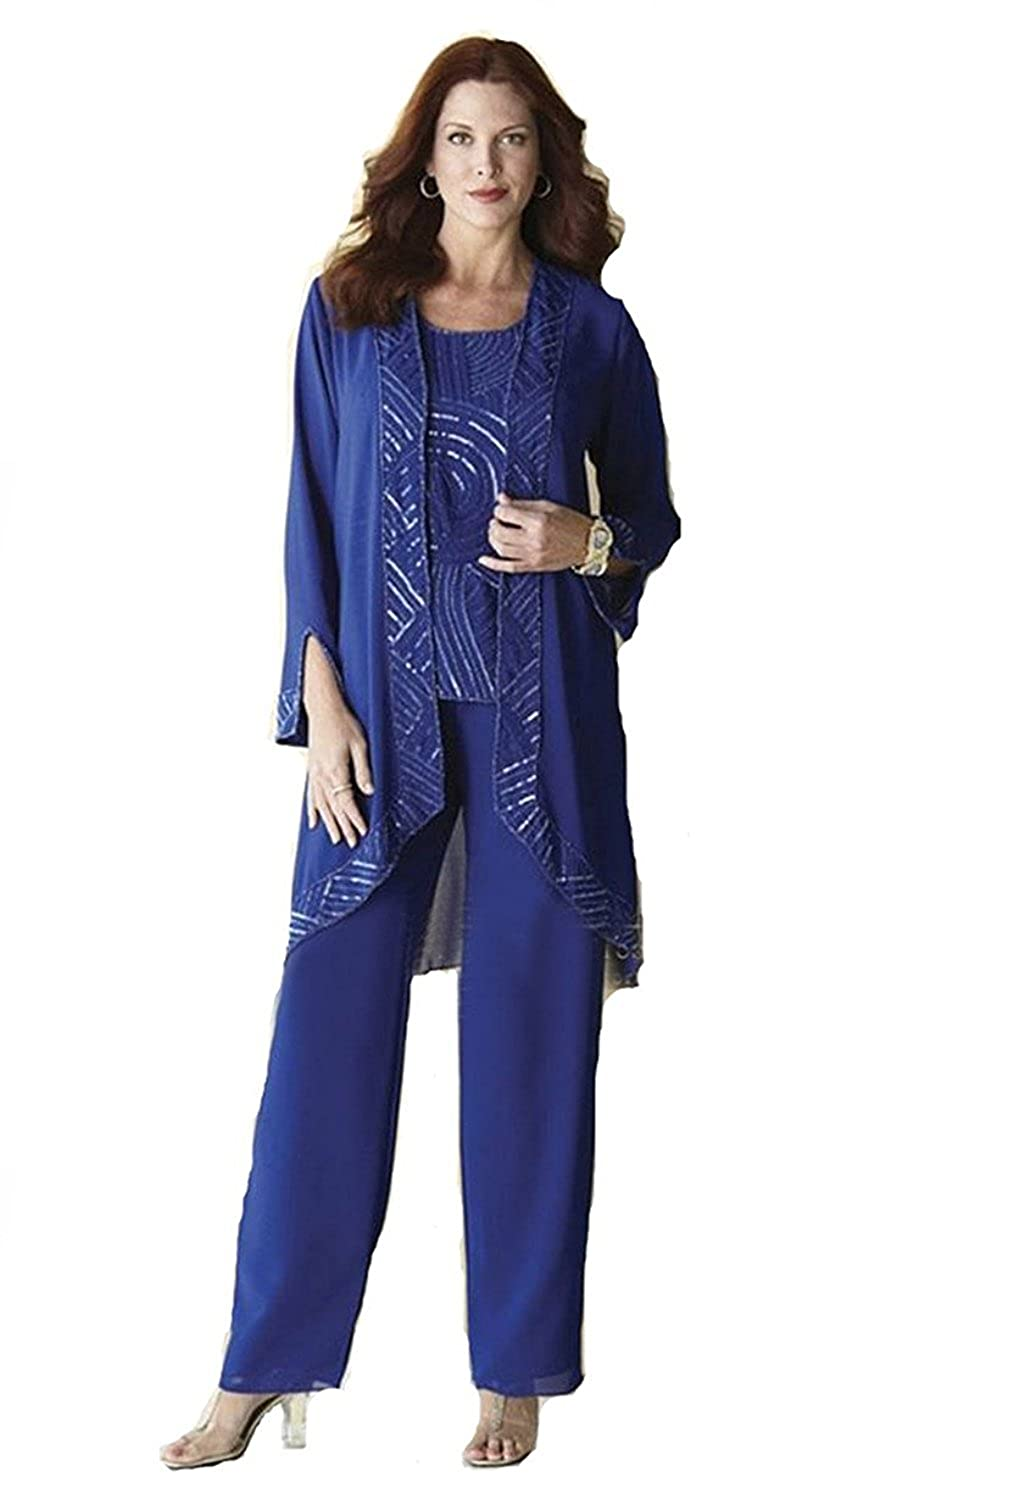 Fenghuavip Long Sleeves Chiffon Blue Mother of Brides Suits 3 Pieces